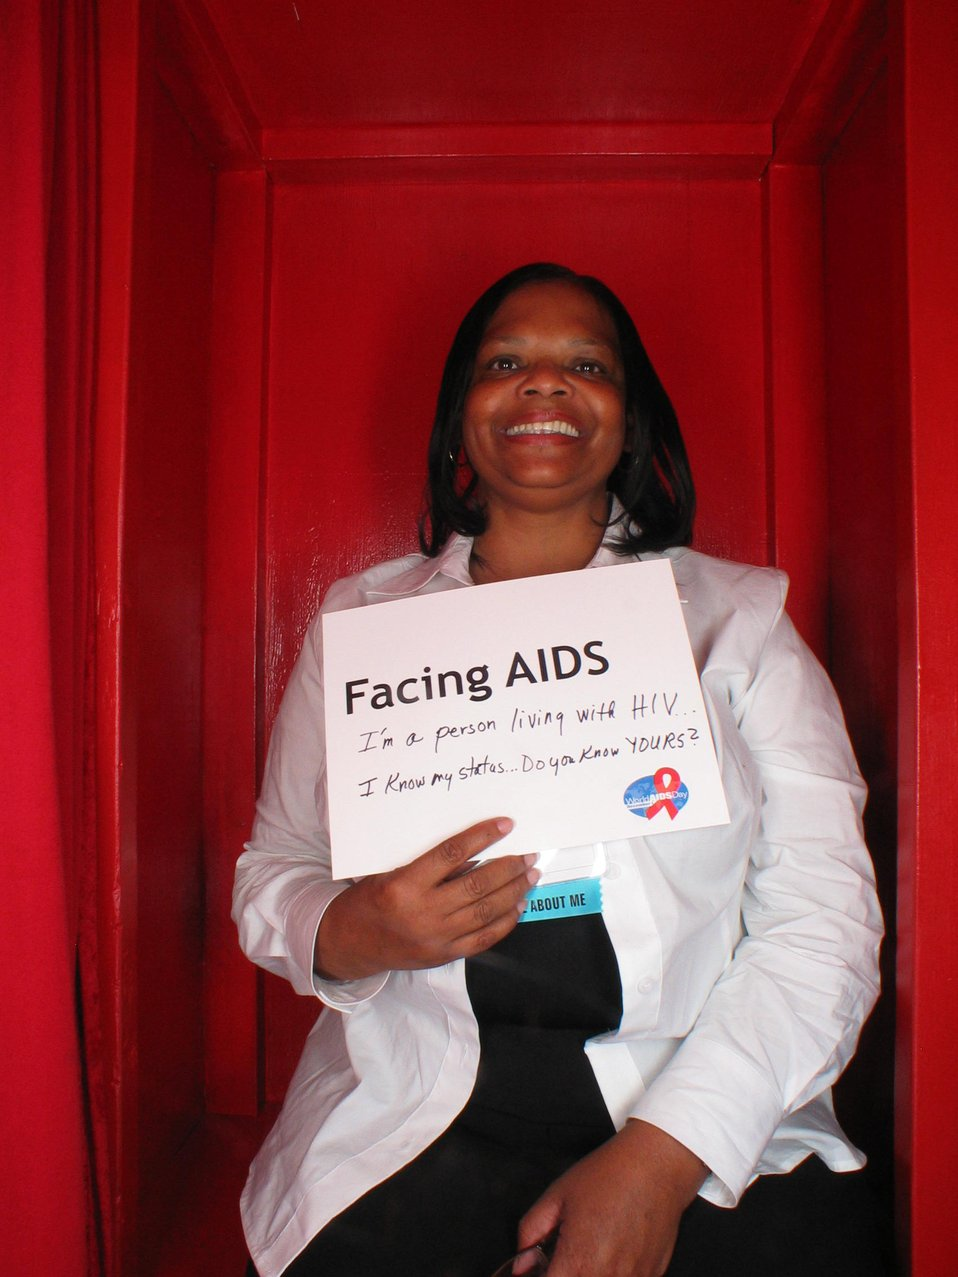 Facing AIDS I'm a person living with HIV. I know my status...do you know YOURS?